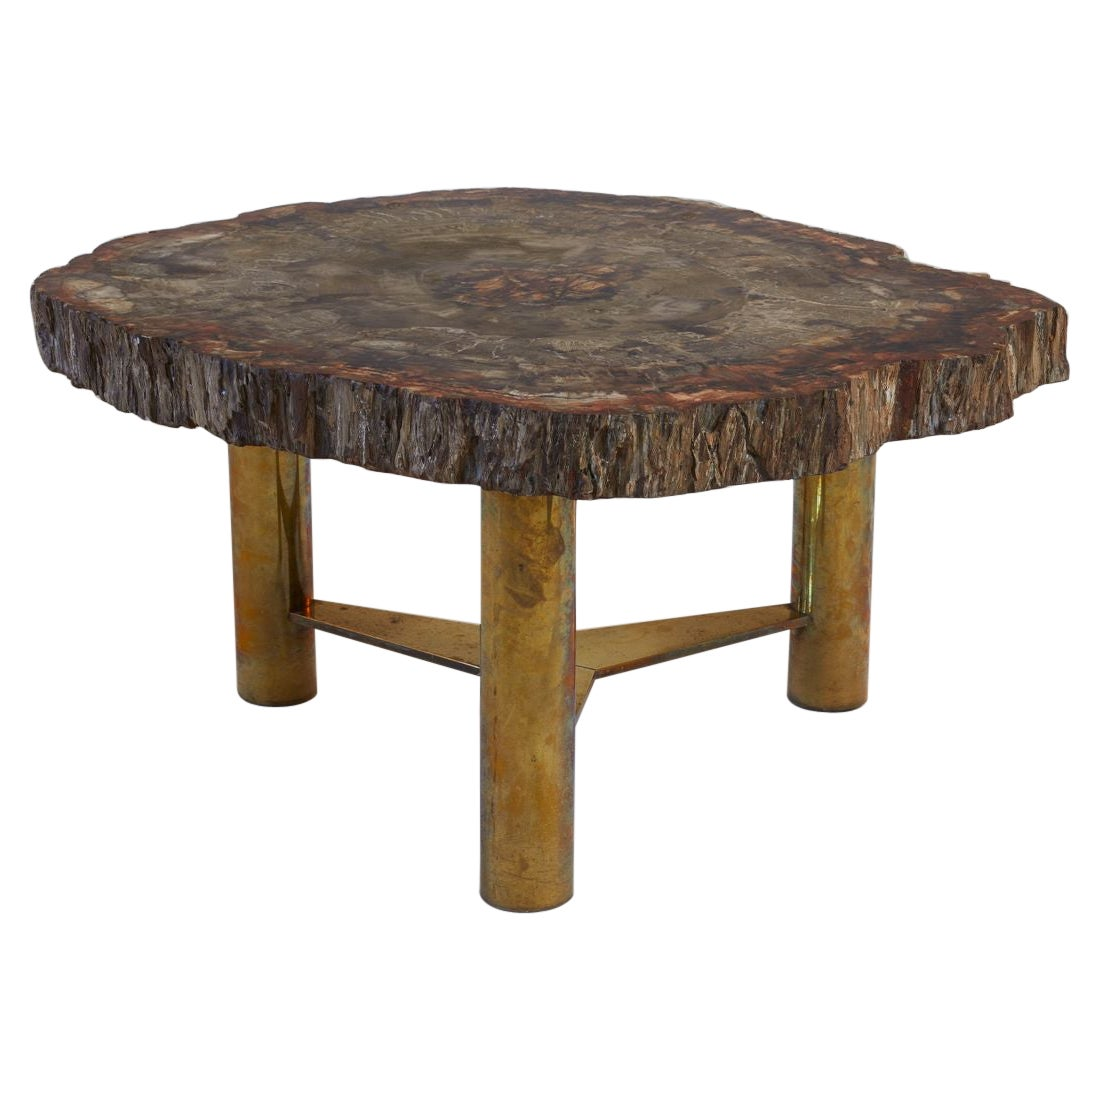 1960s French Petrified Wood Plateaux with Bronze Base Cocktail Table